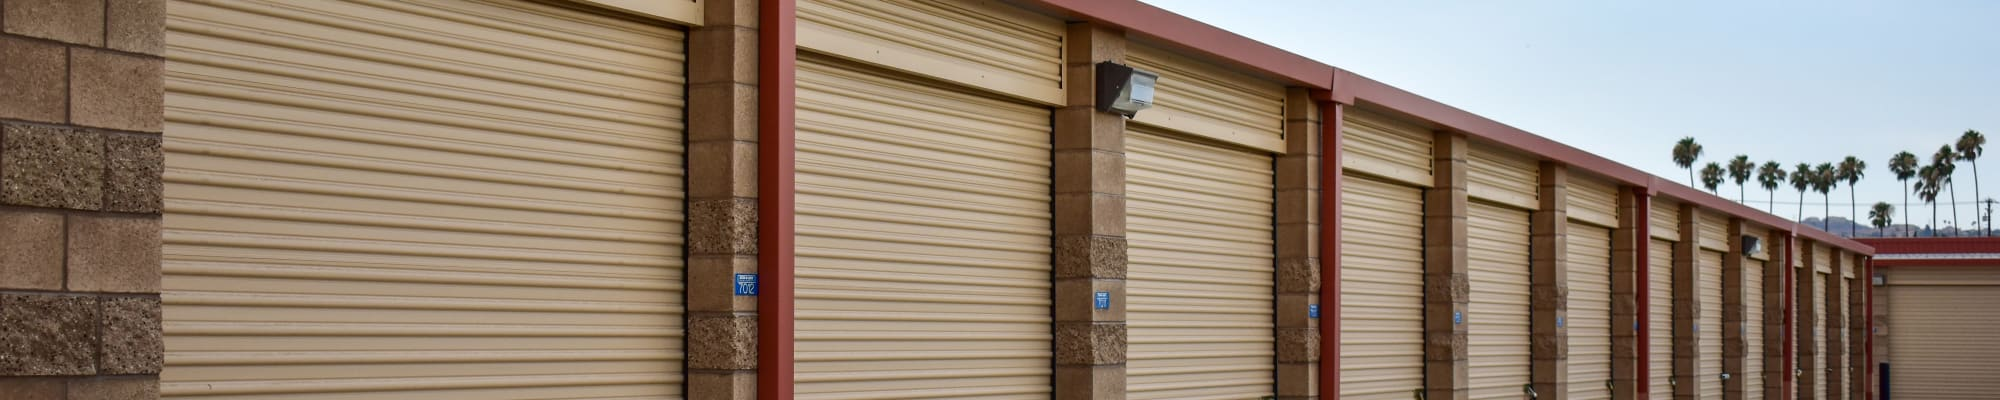 Drive-up storage at STOR-N-LOCK Self Storage in Redlands, California